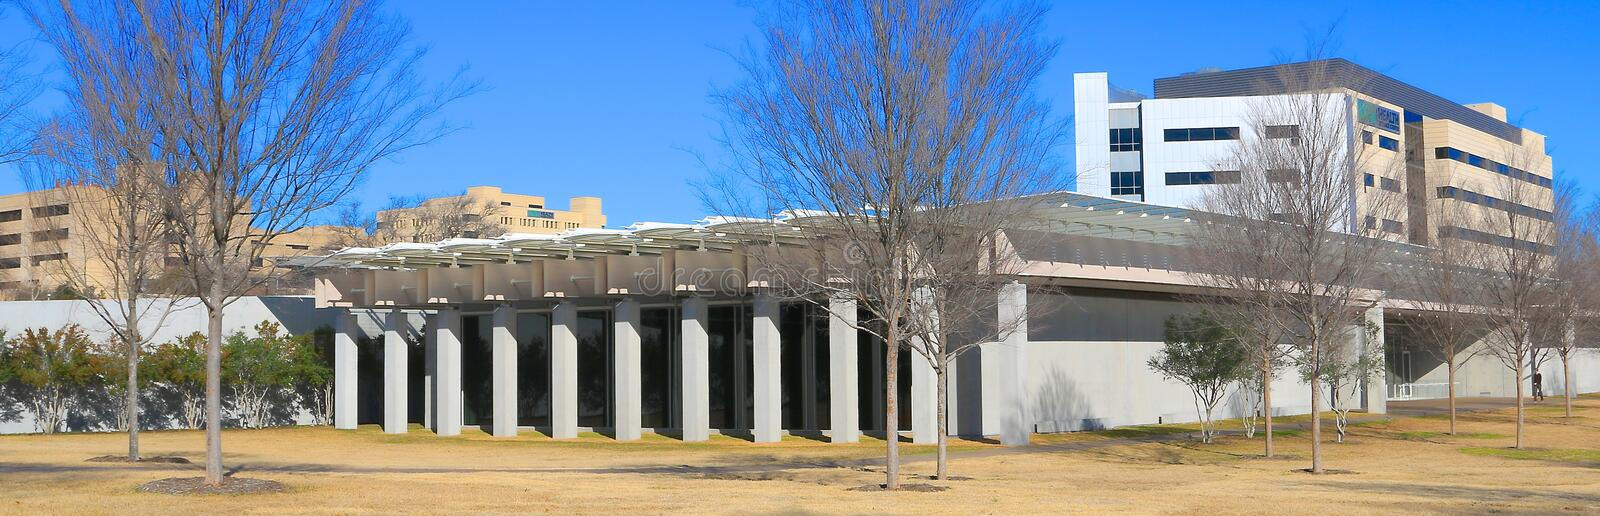 The Kimball Art Museum Fort Worth, Texas. stock images